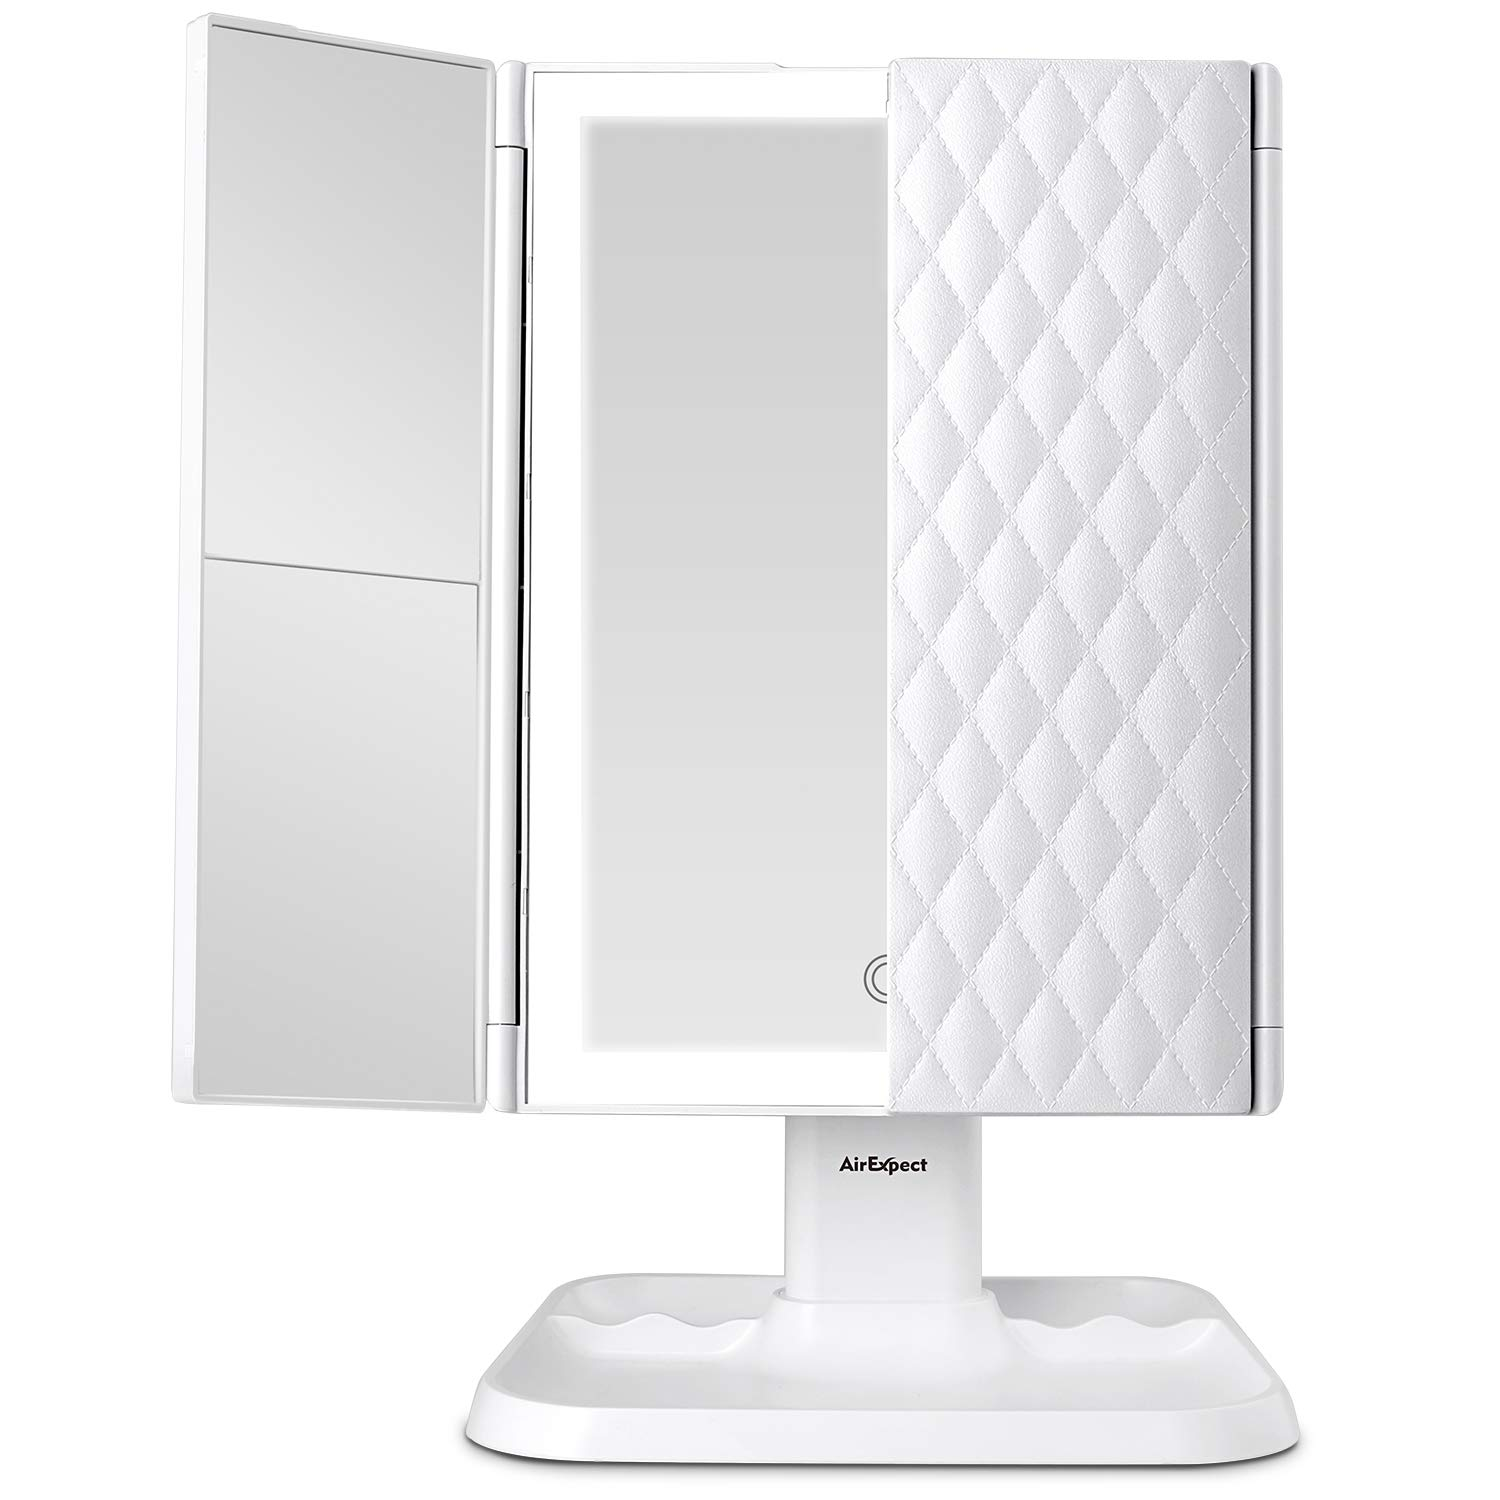 Here is this top rated trim-fold makeup mirror on Amazon with 3 levels of magnification and more!